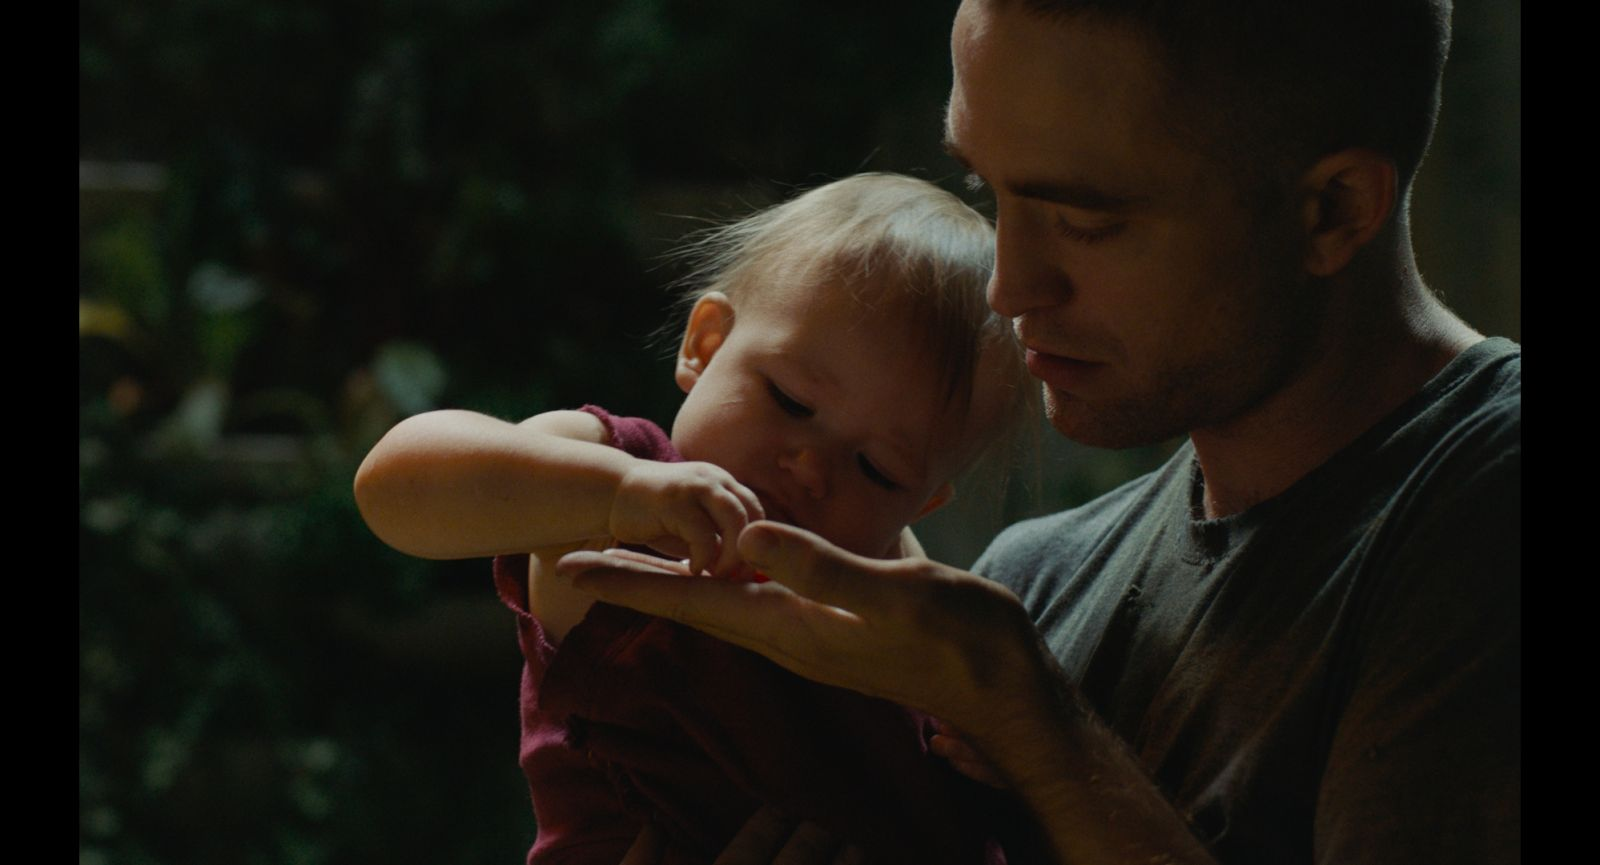 Robert Pattinson stars in High Life - Watch the trailer